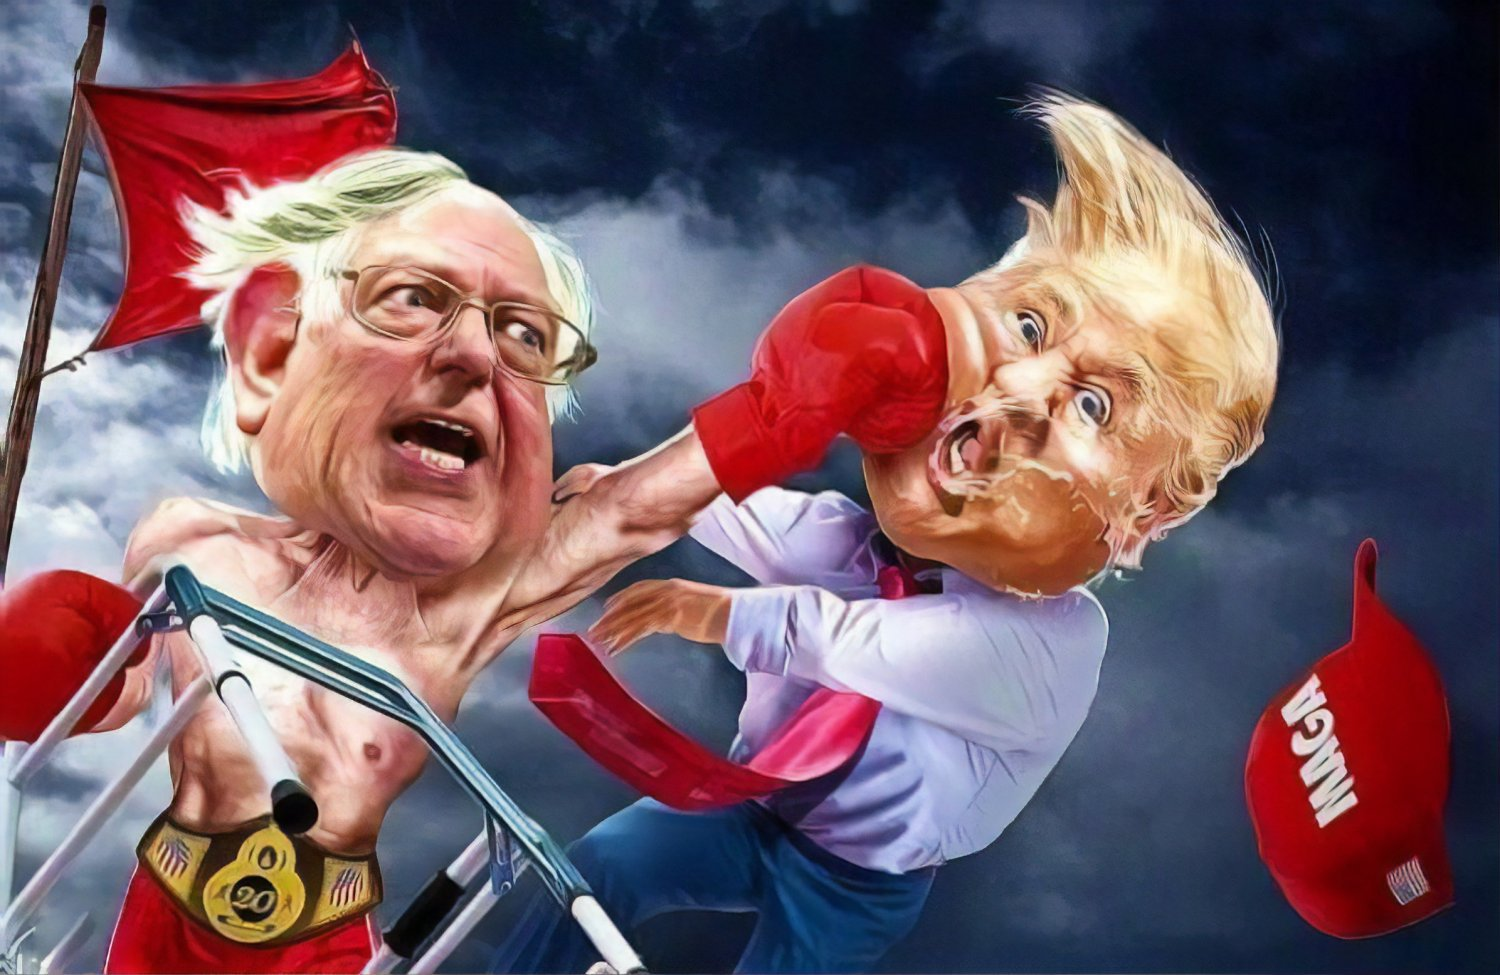 Trump Flag - Bernie Sanders Flag 3x5 Foot Fighting Knock Out For The President USA 2020 Banner